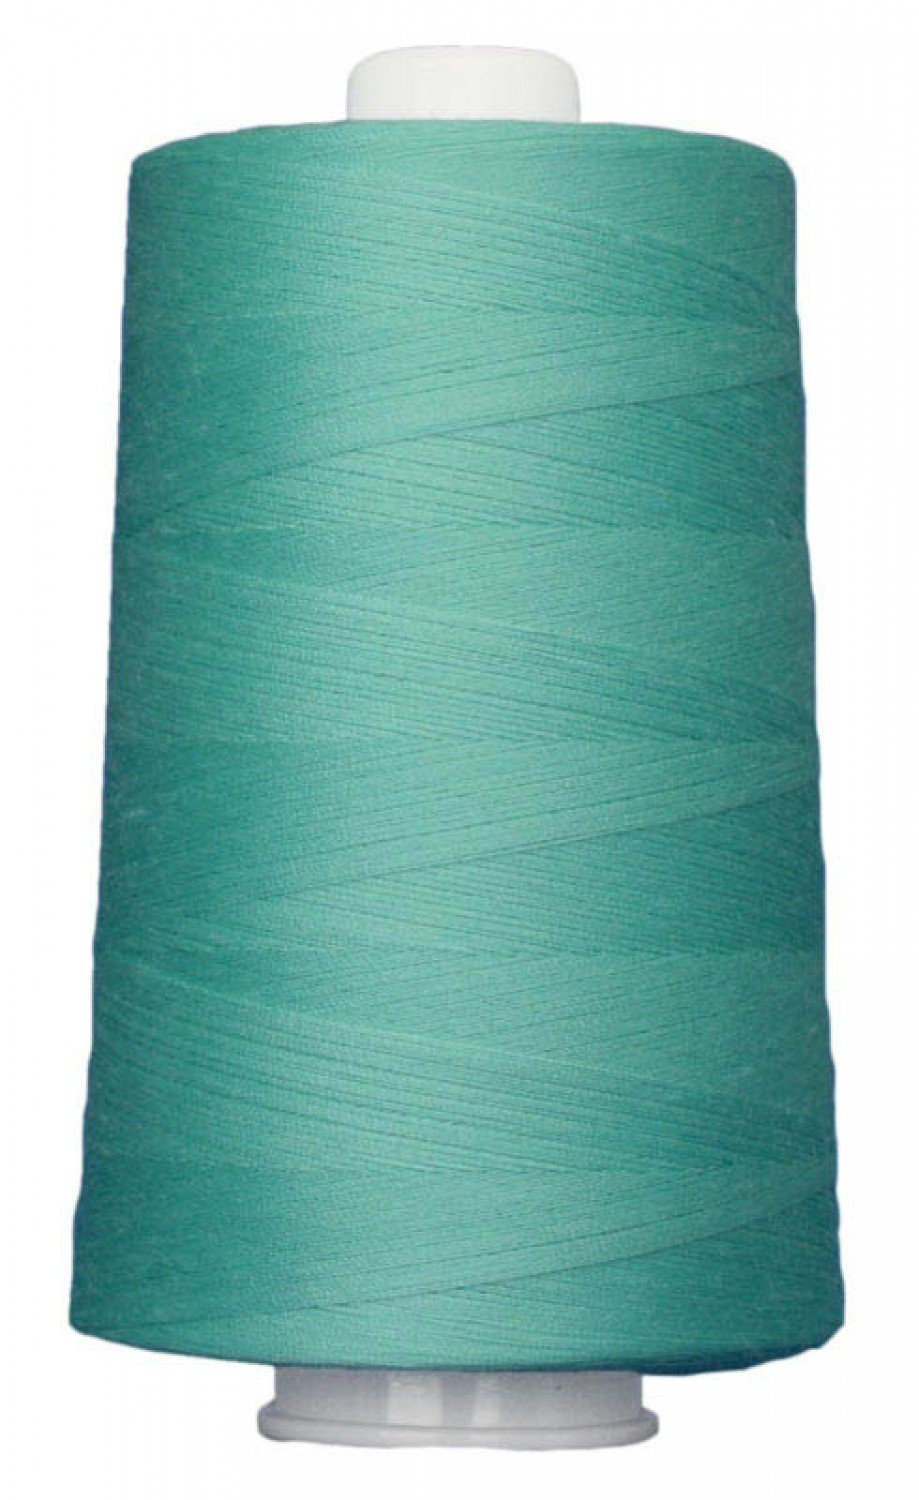 OMNI Polyester Thread 40 wt 6000 yds 3094 Wintergreen by Superior